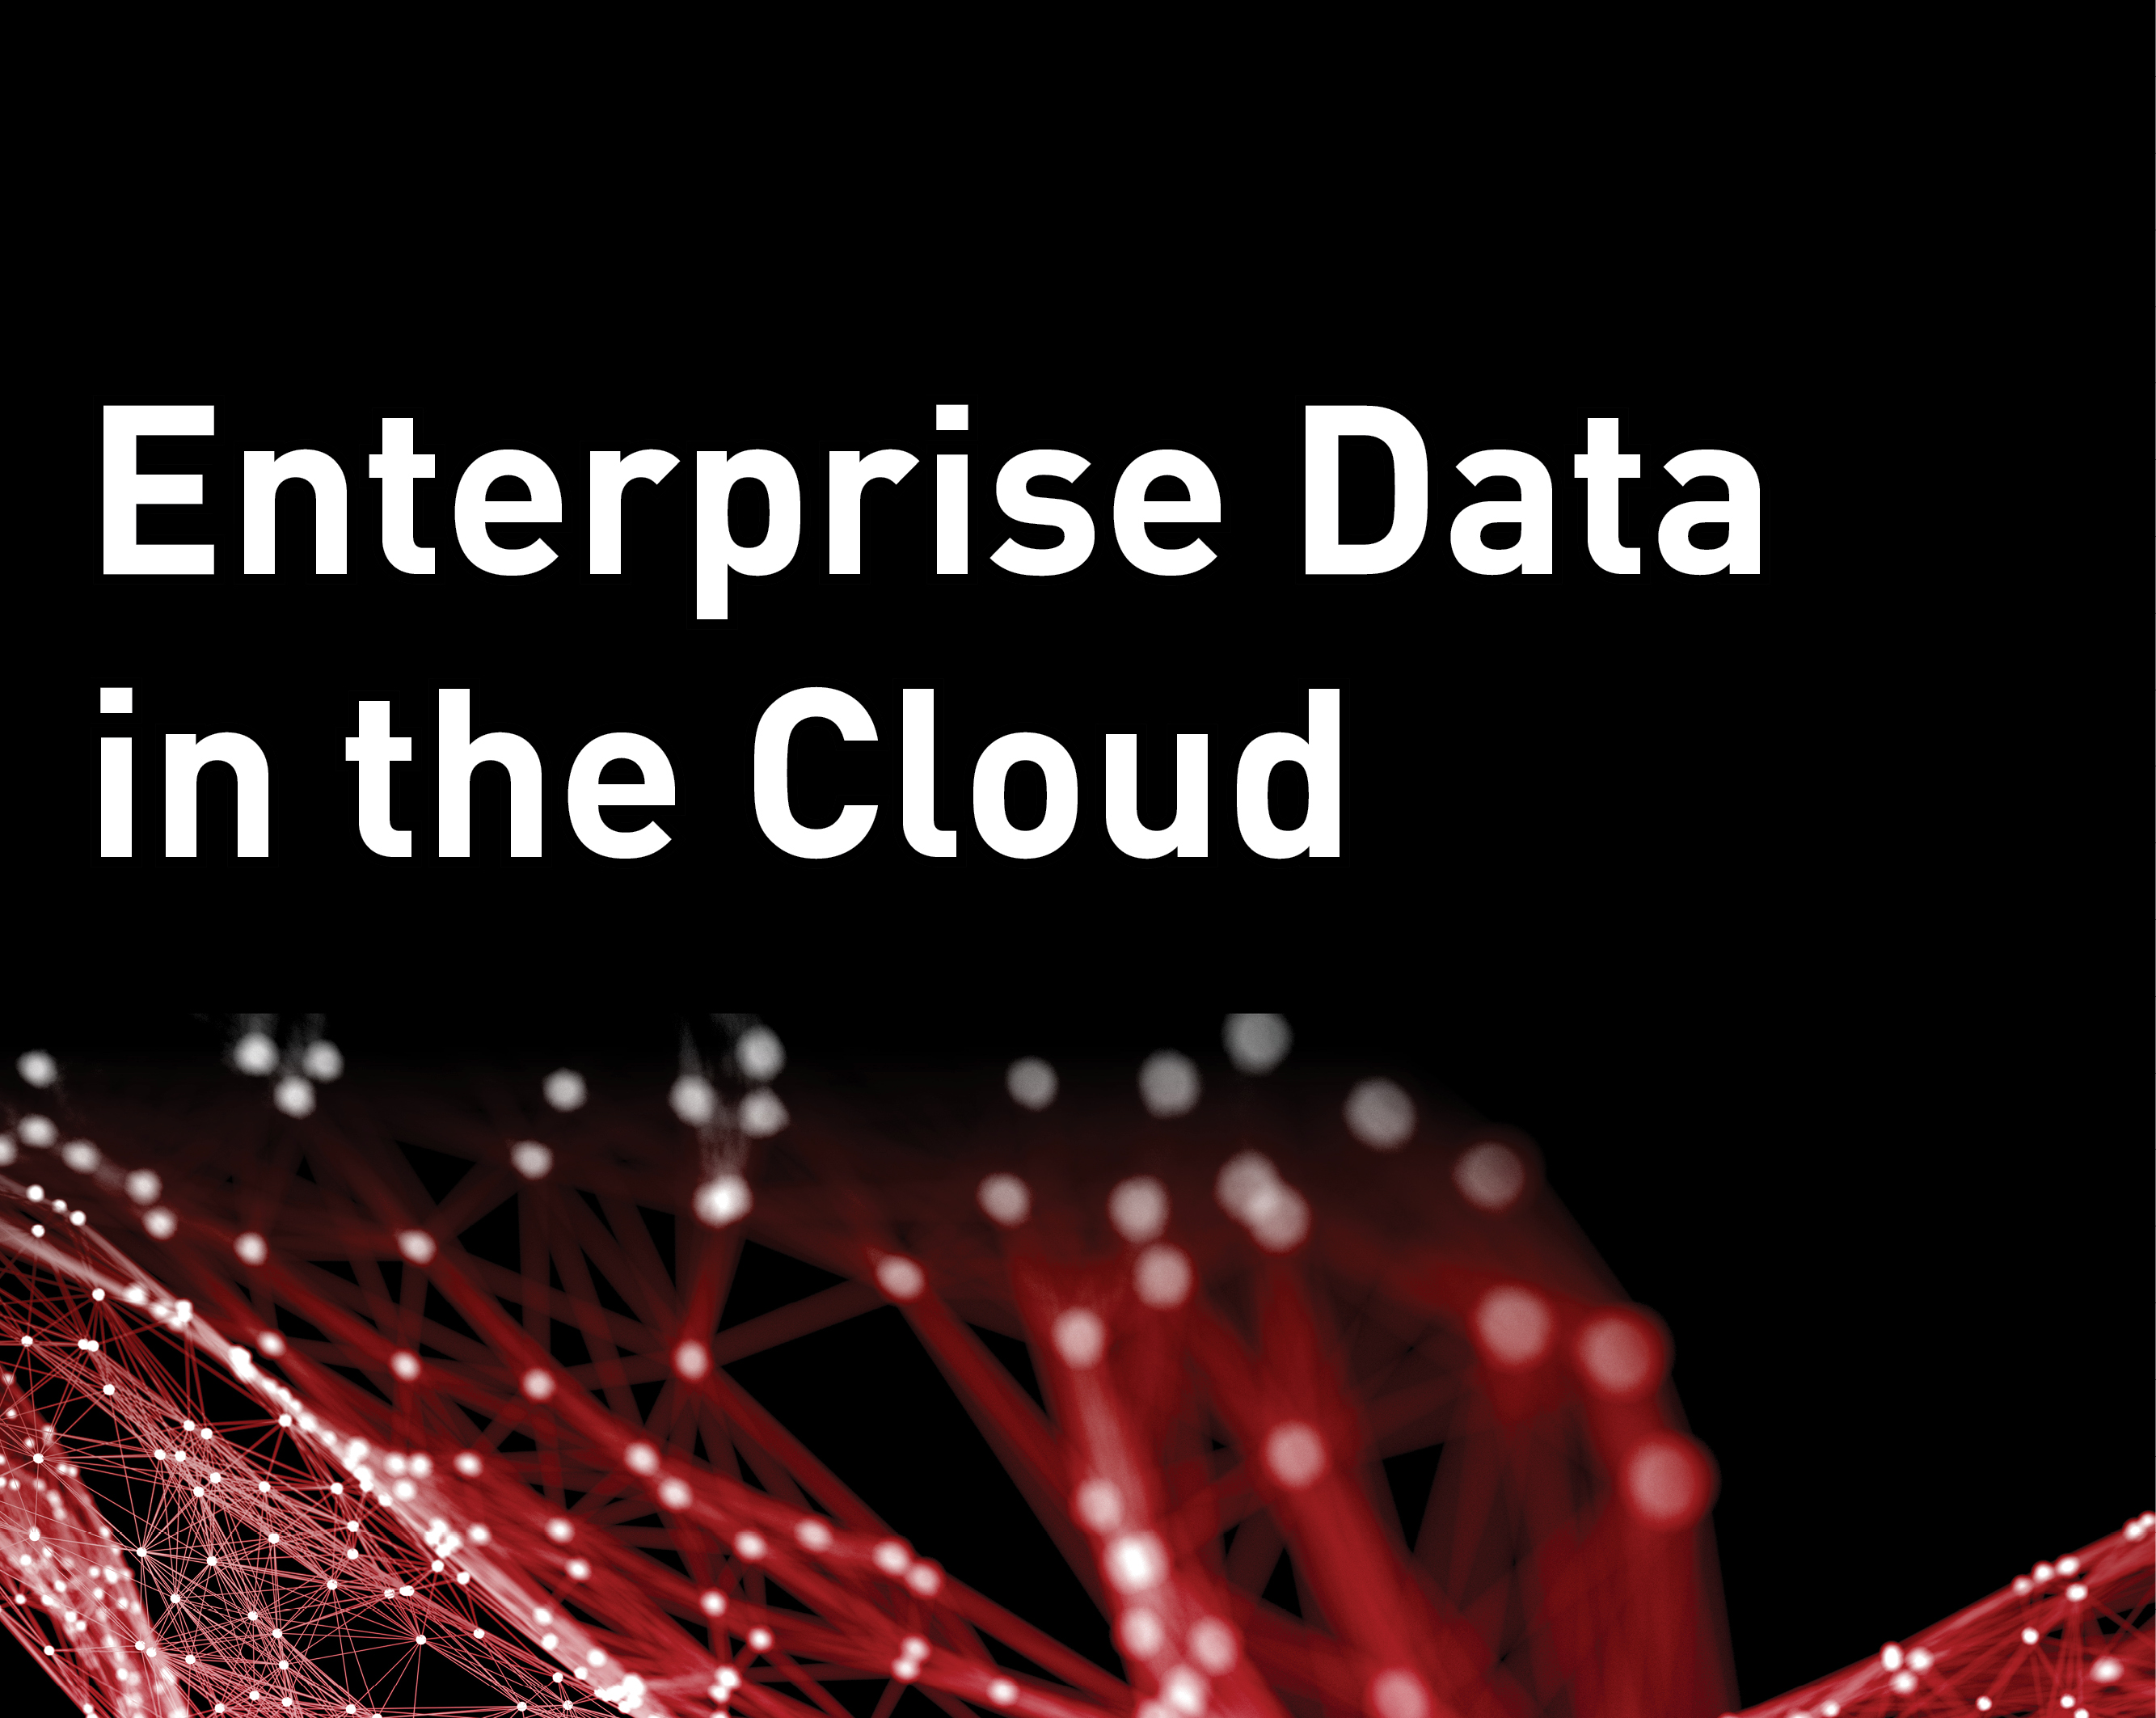 Enterprise Data in the Cloud